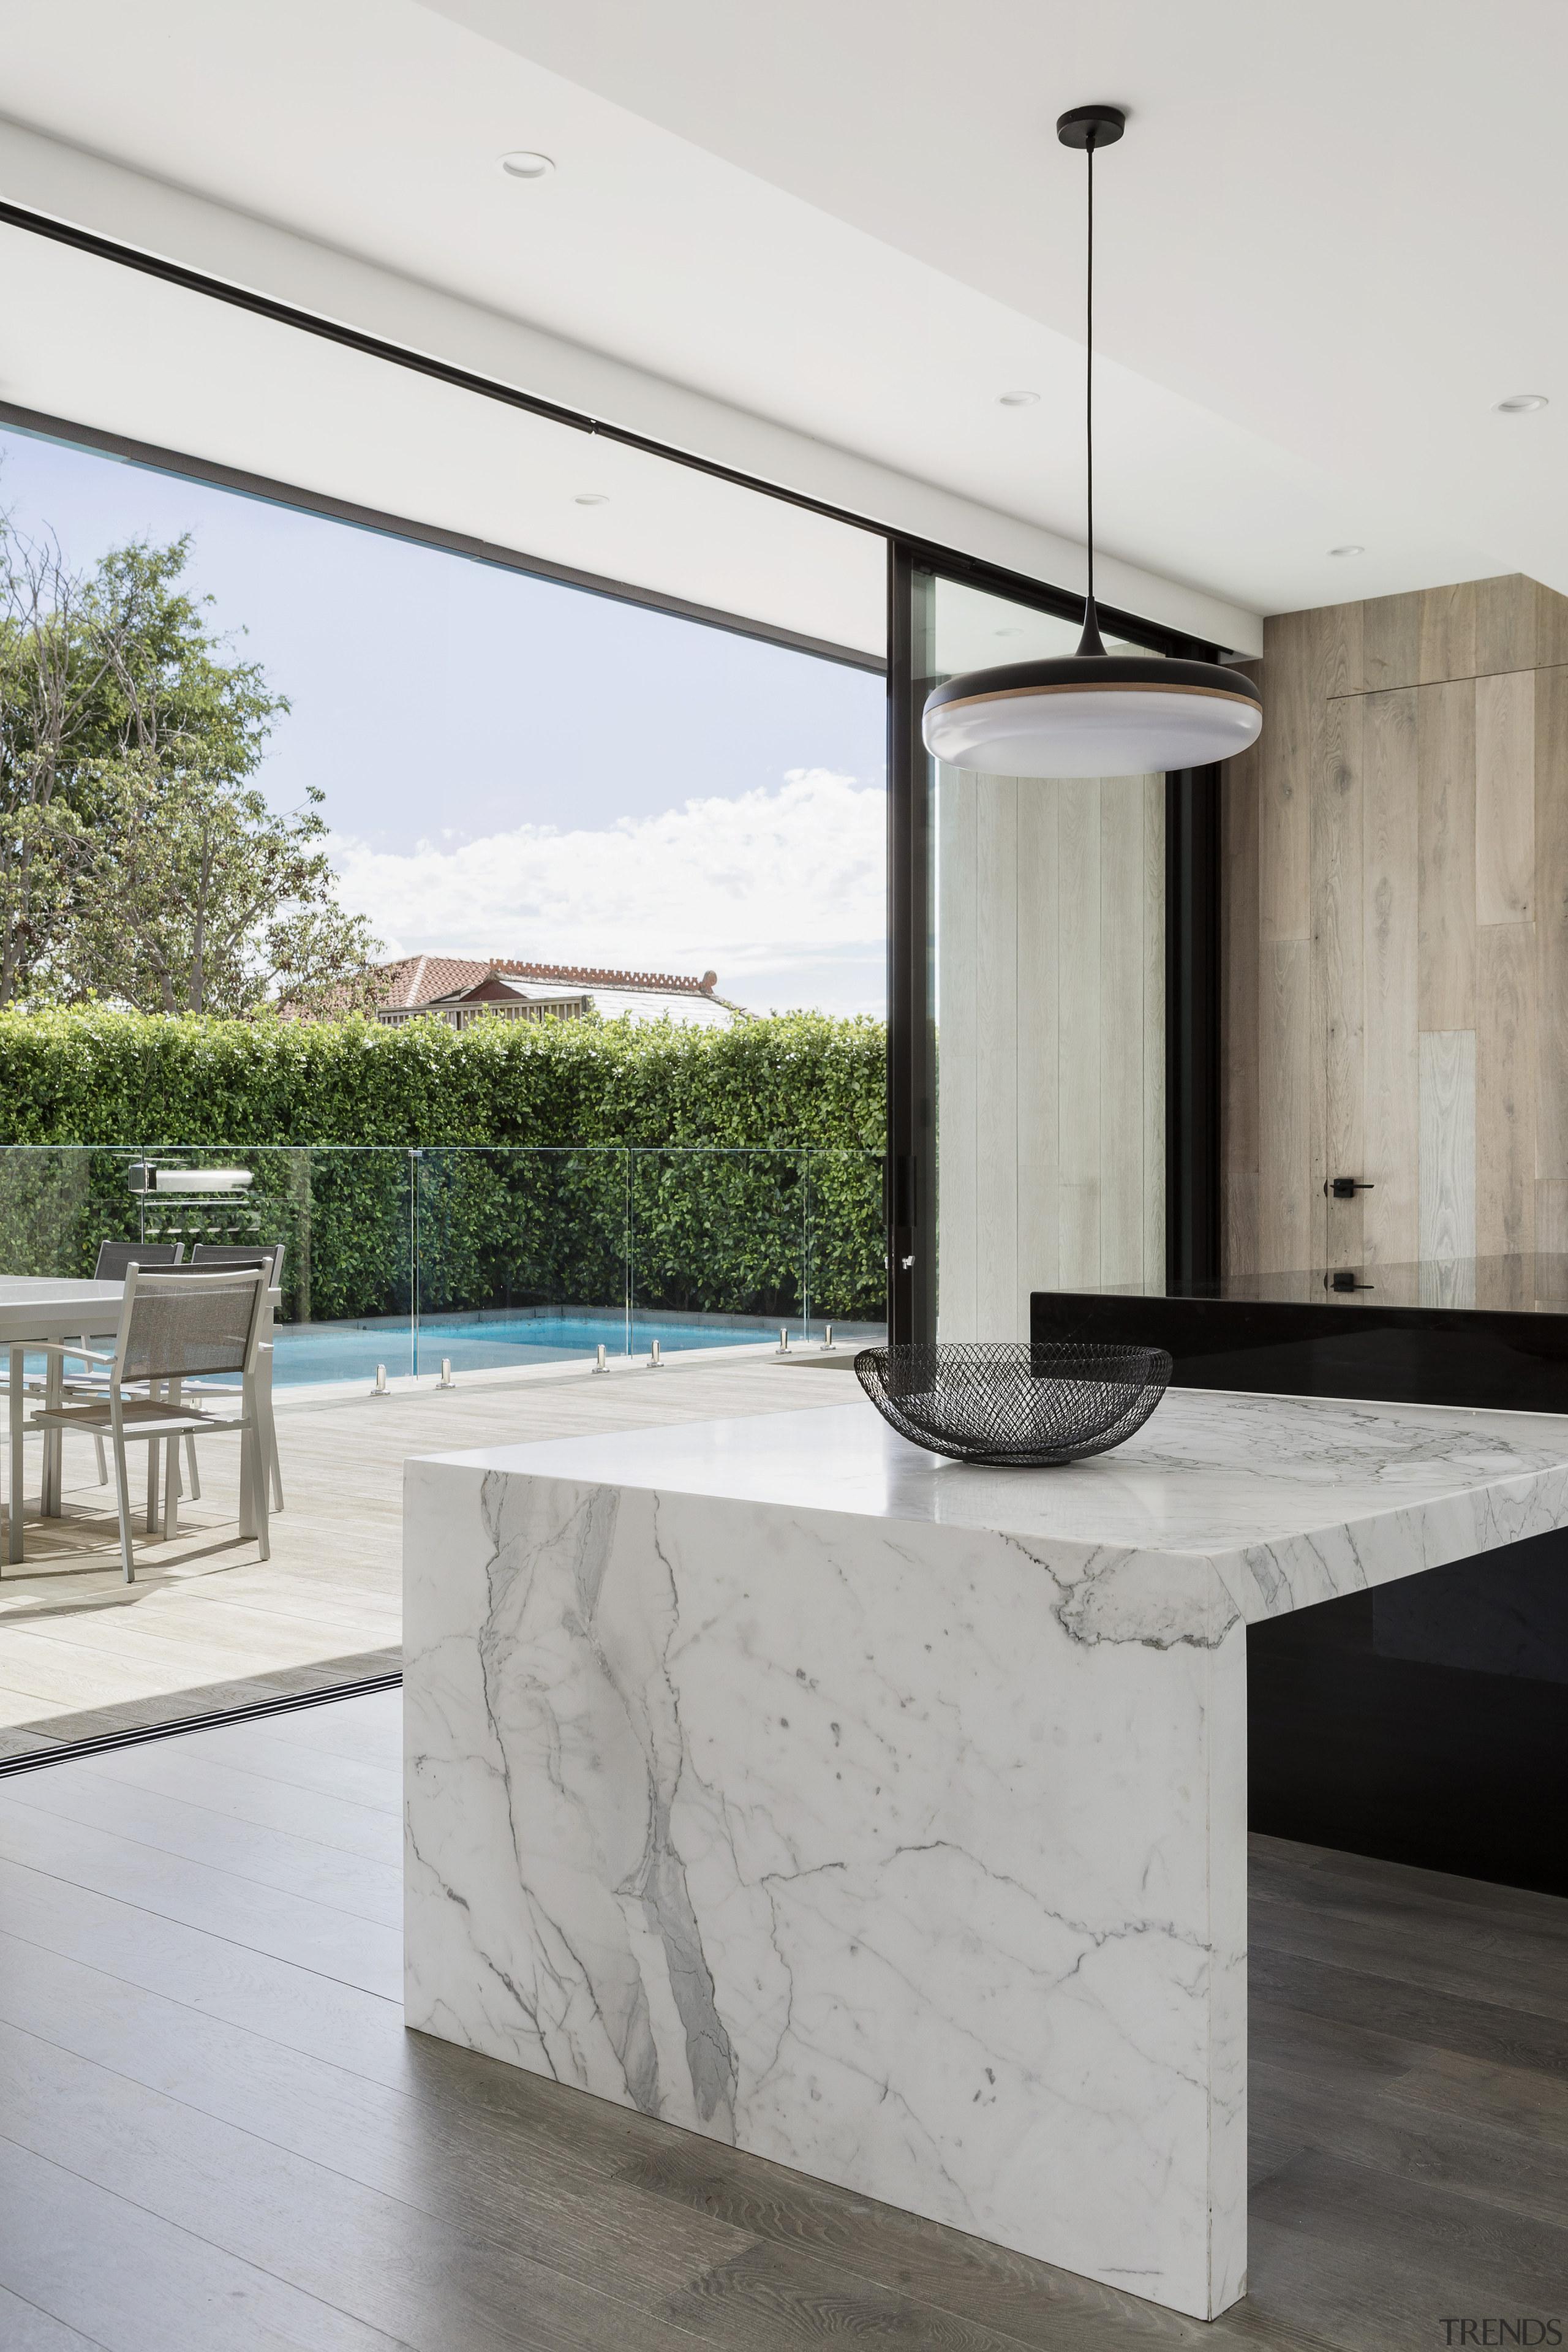 Dark granite for the main benchtop is matched architecture, countertop, benchtop, home, house, interior design, Island, Marble, indoor outdoor flow, LSA Architects